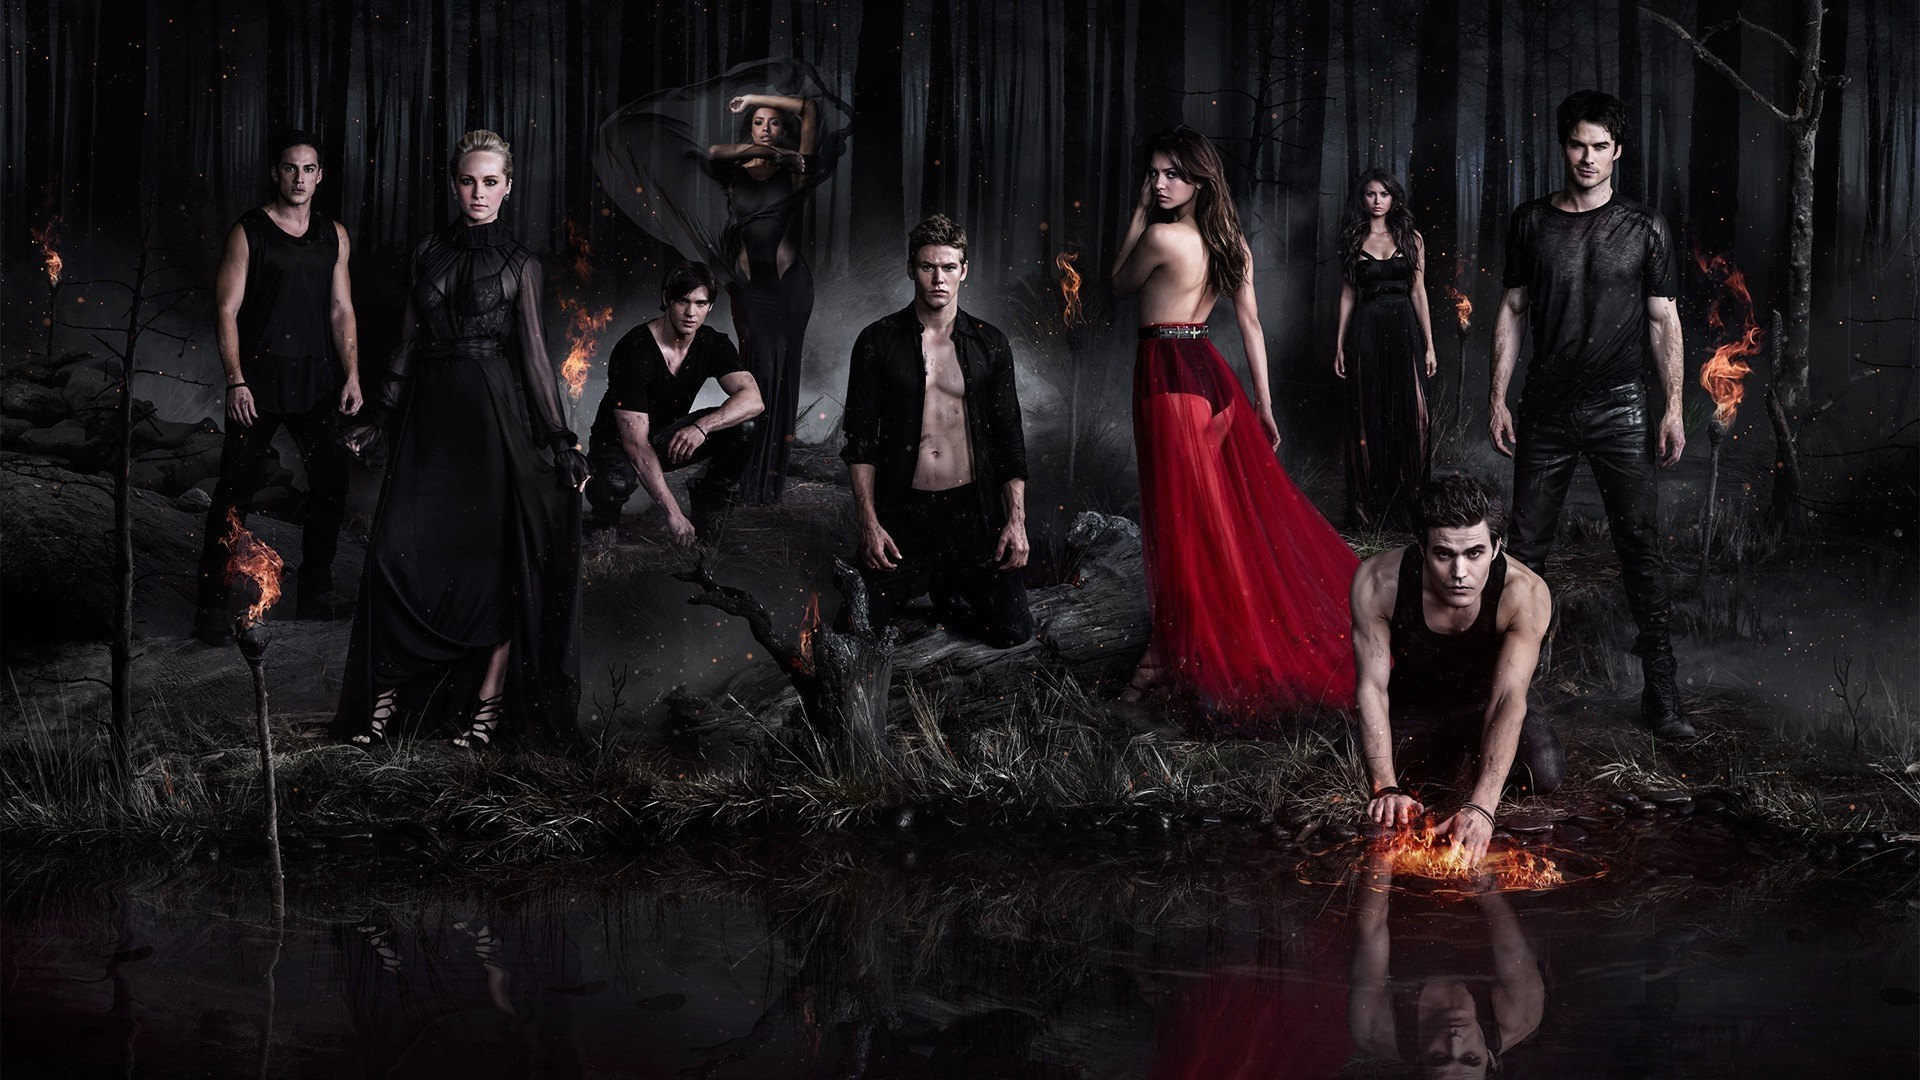 Vampire Diaries Free Wallpaper and Background